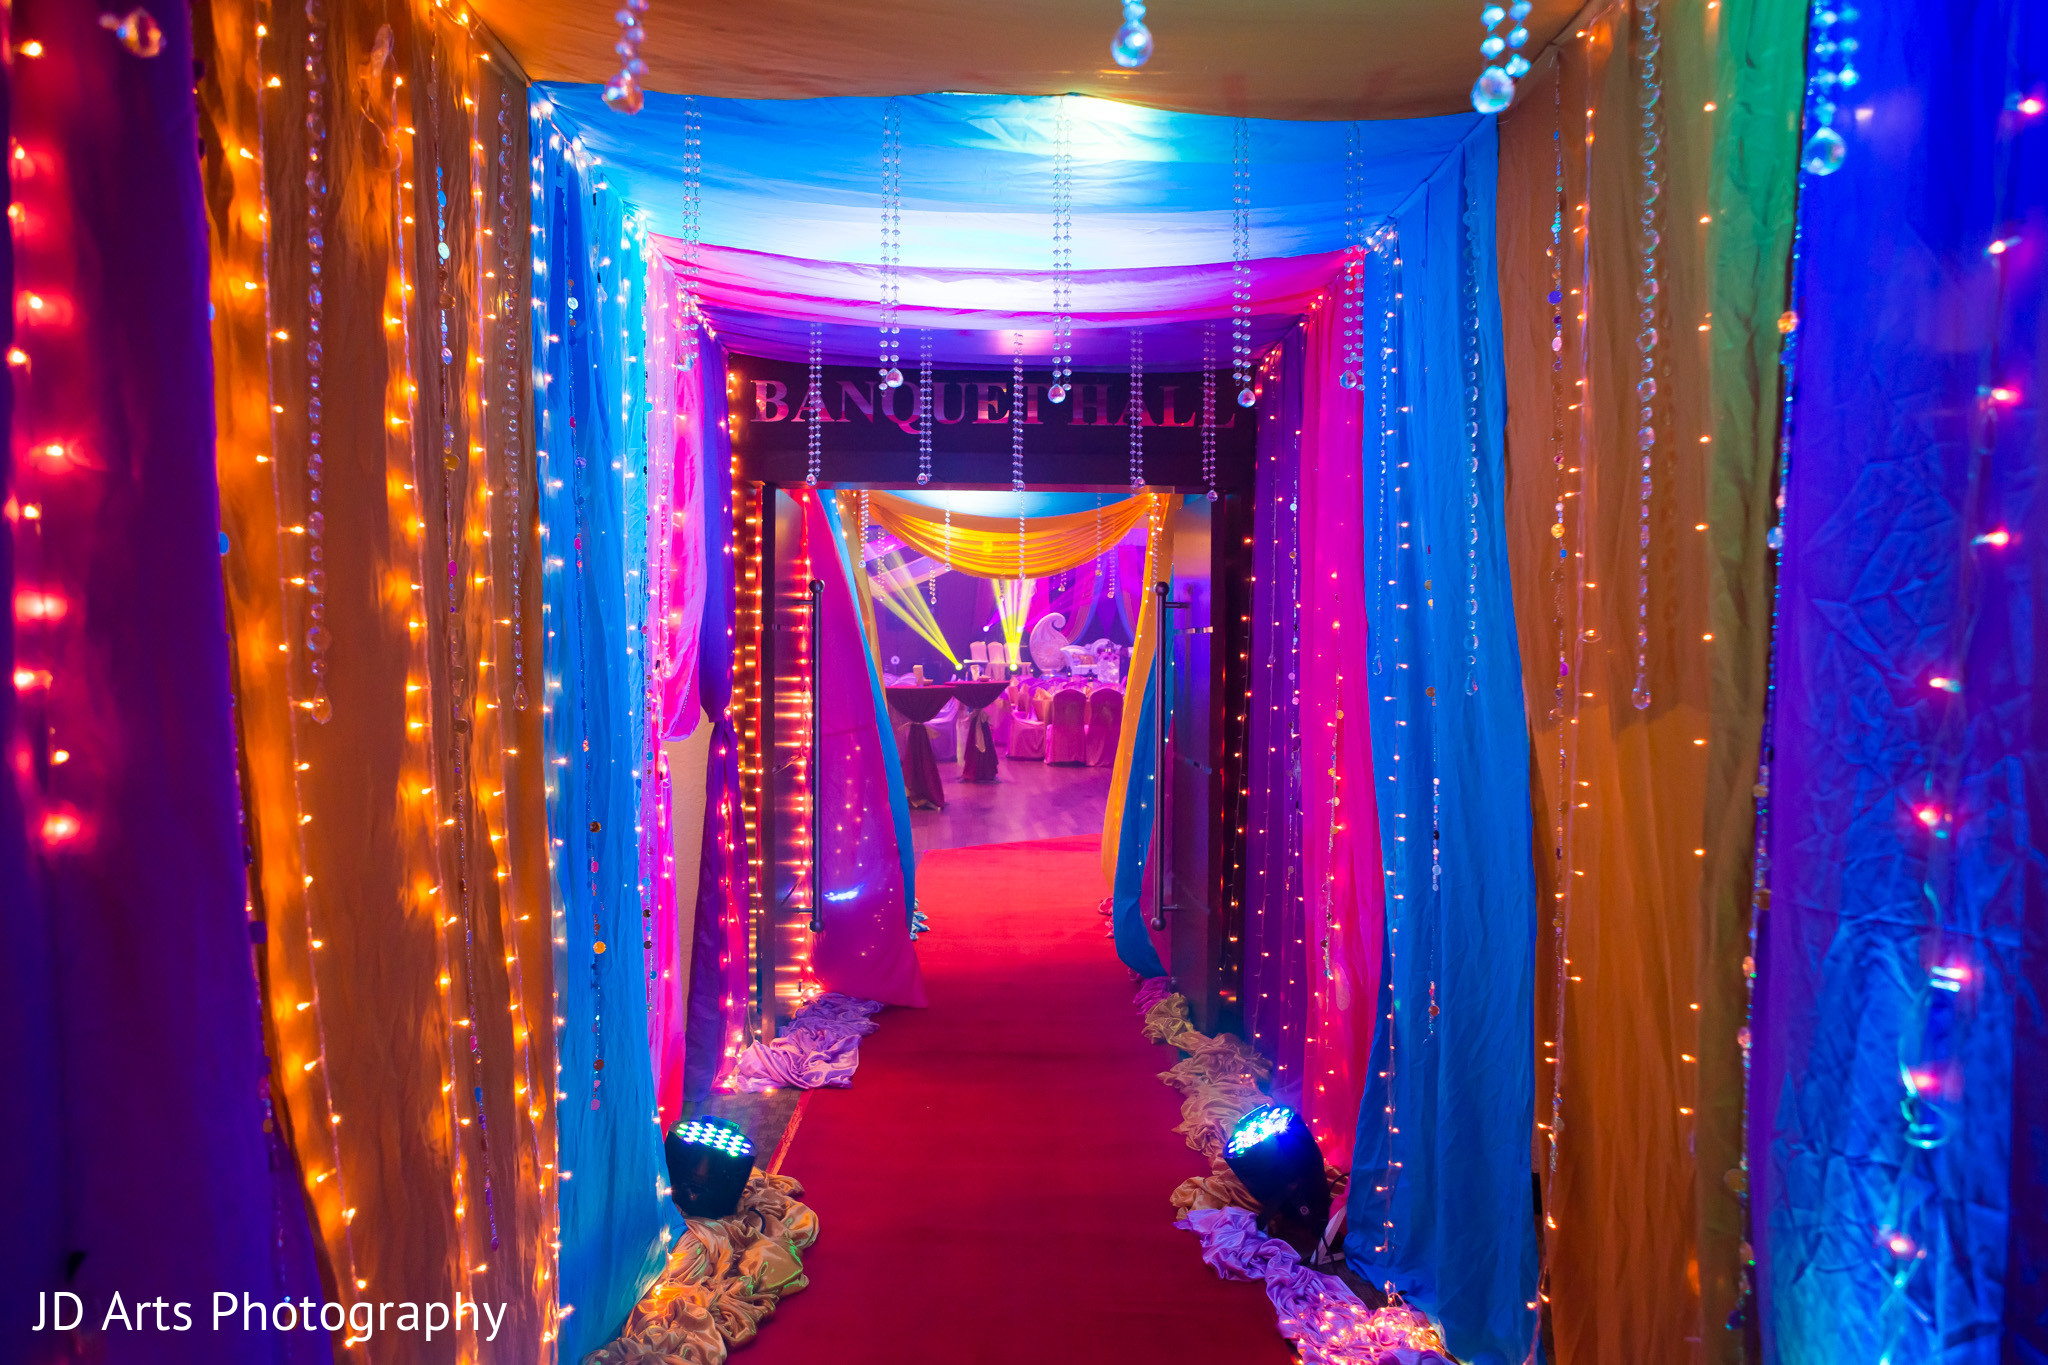 Wedding Decorations Planner Wedding Decoration Ideas. Kuala Lumpur Malaysia  Indian Wedding By JD Arts Graphy